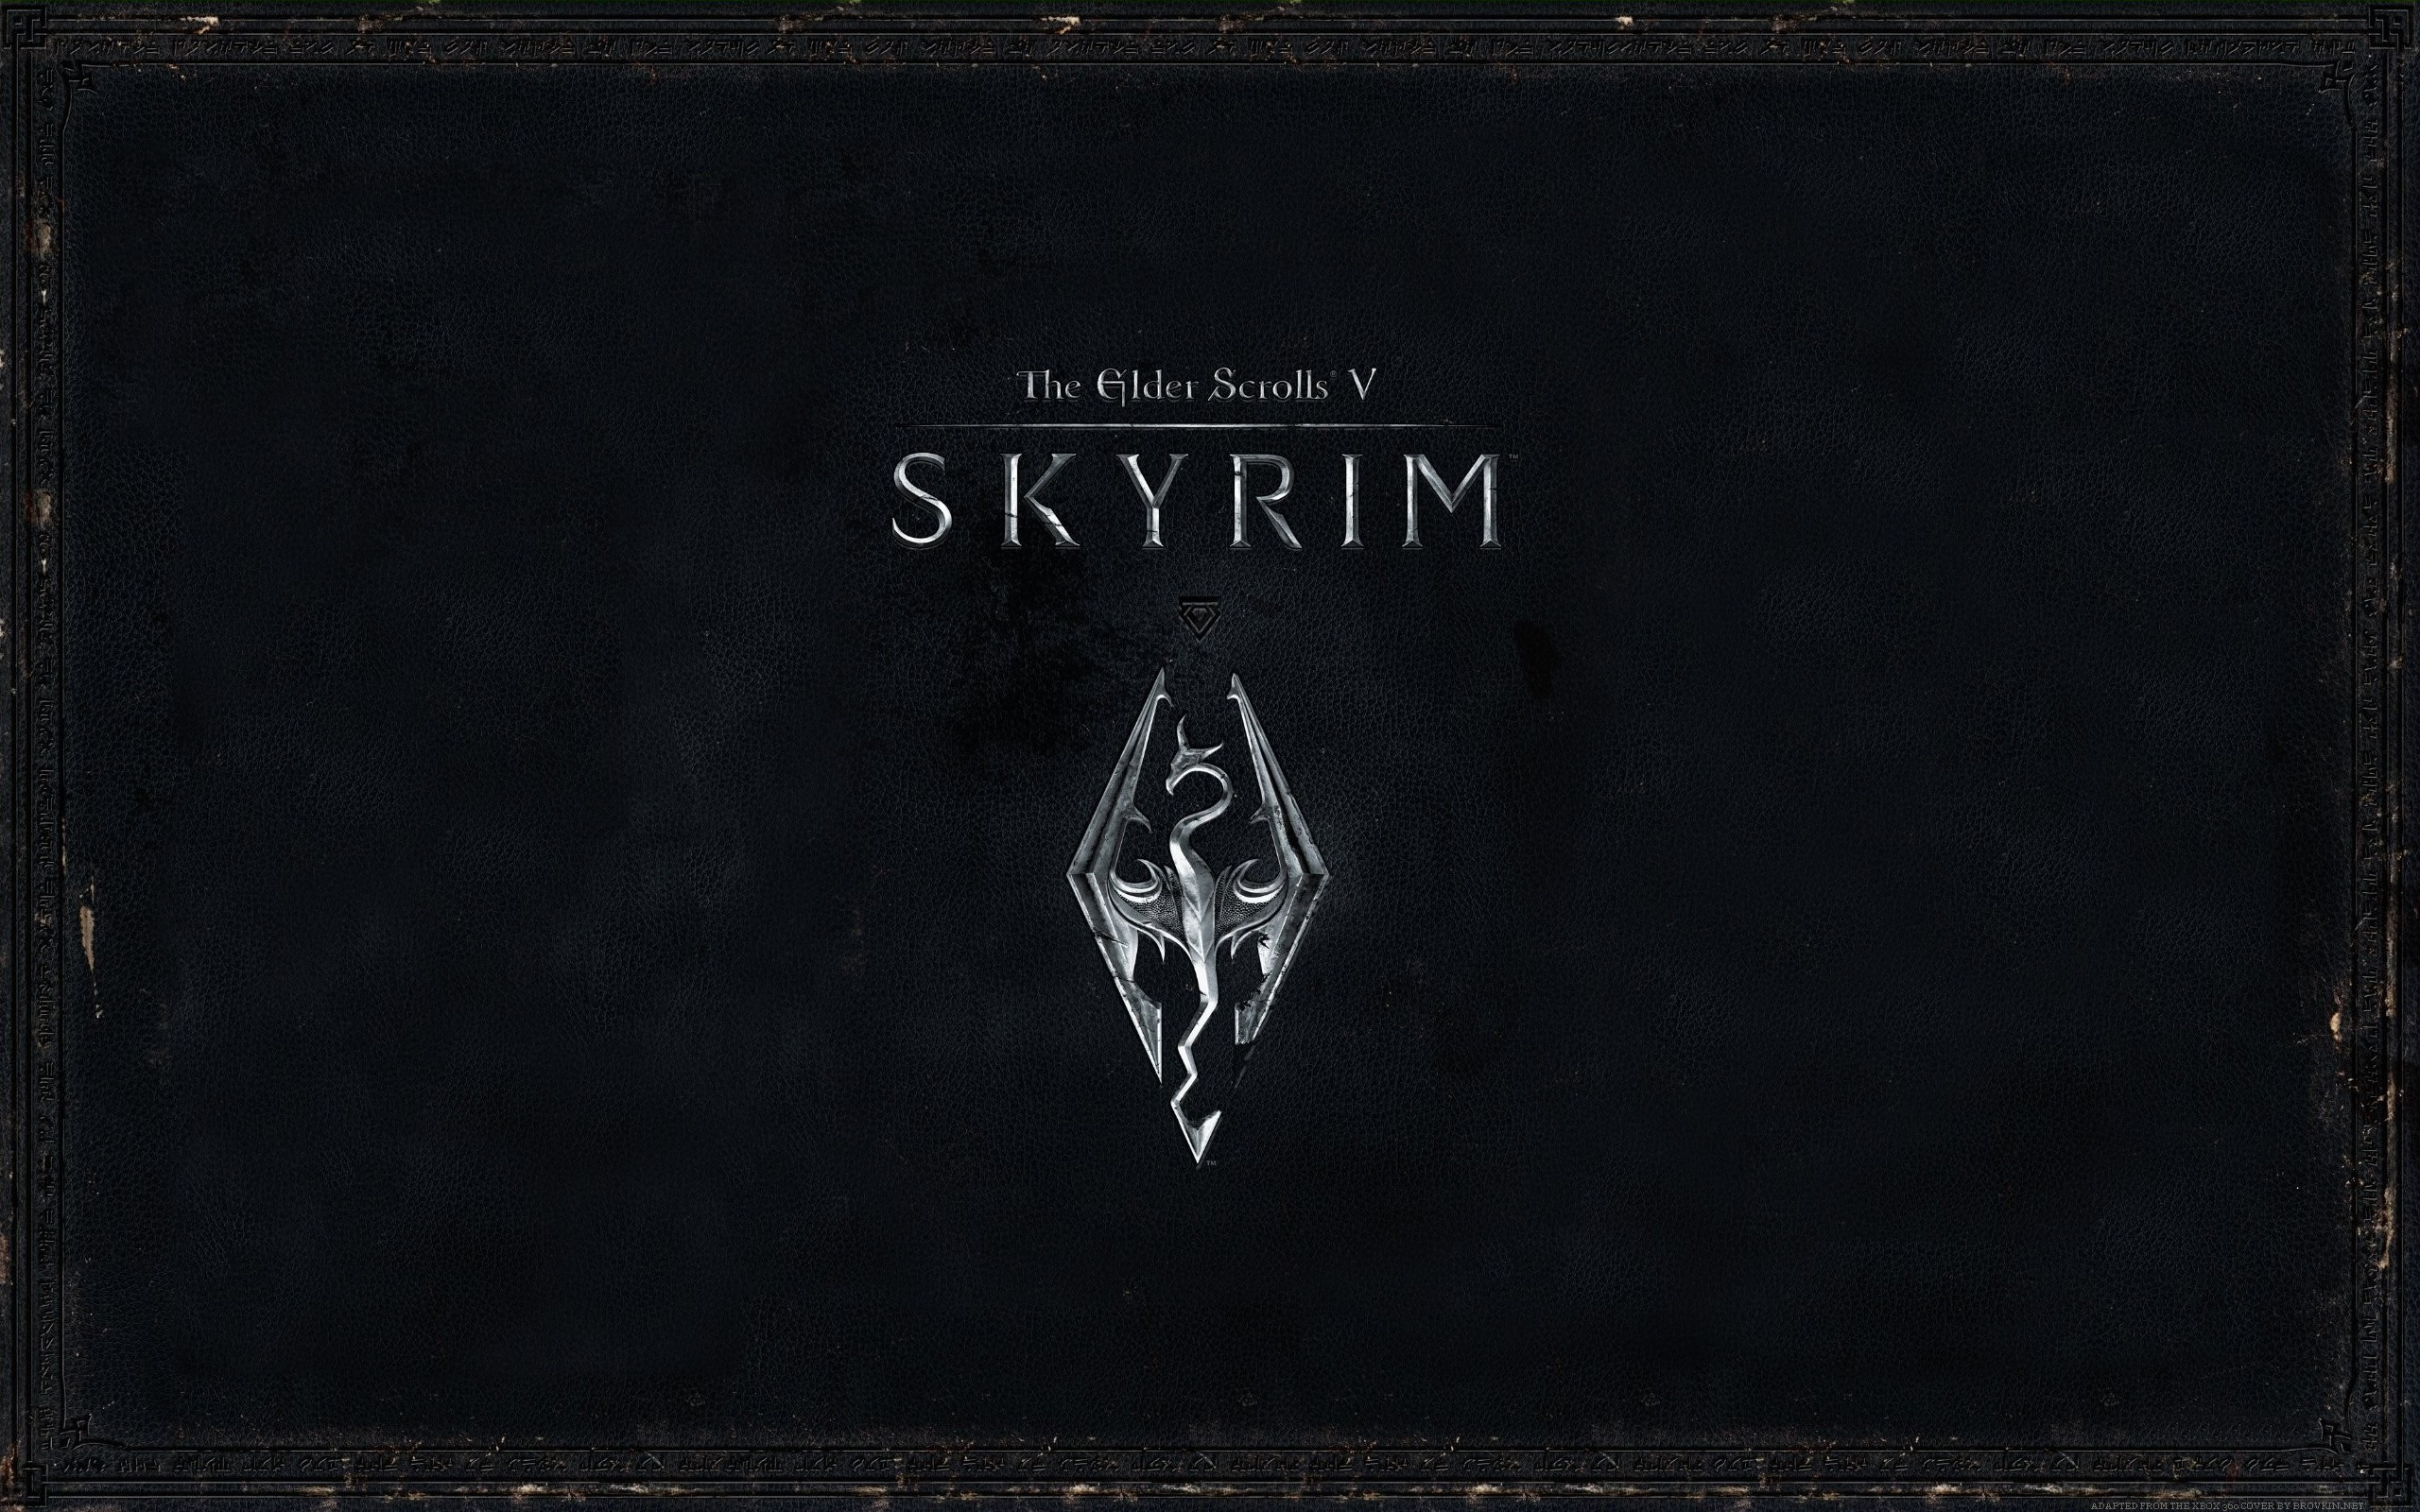 Wallpaper The Elder Scrolls V: Skyrim logotype